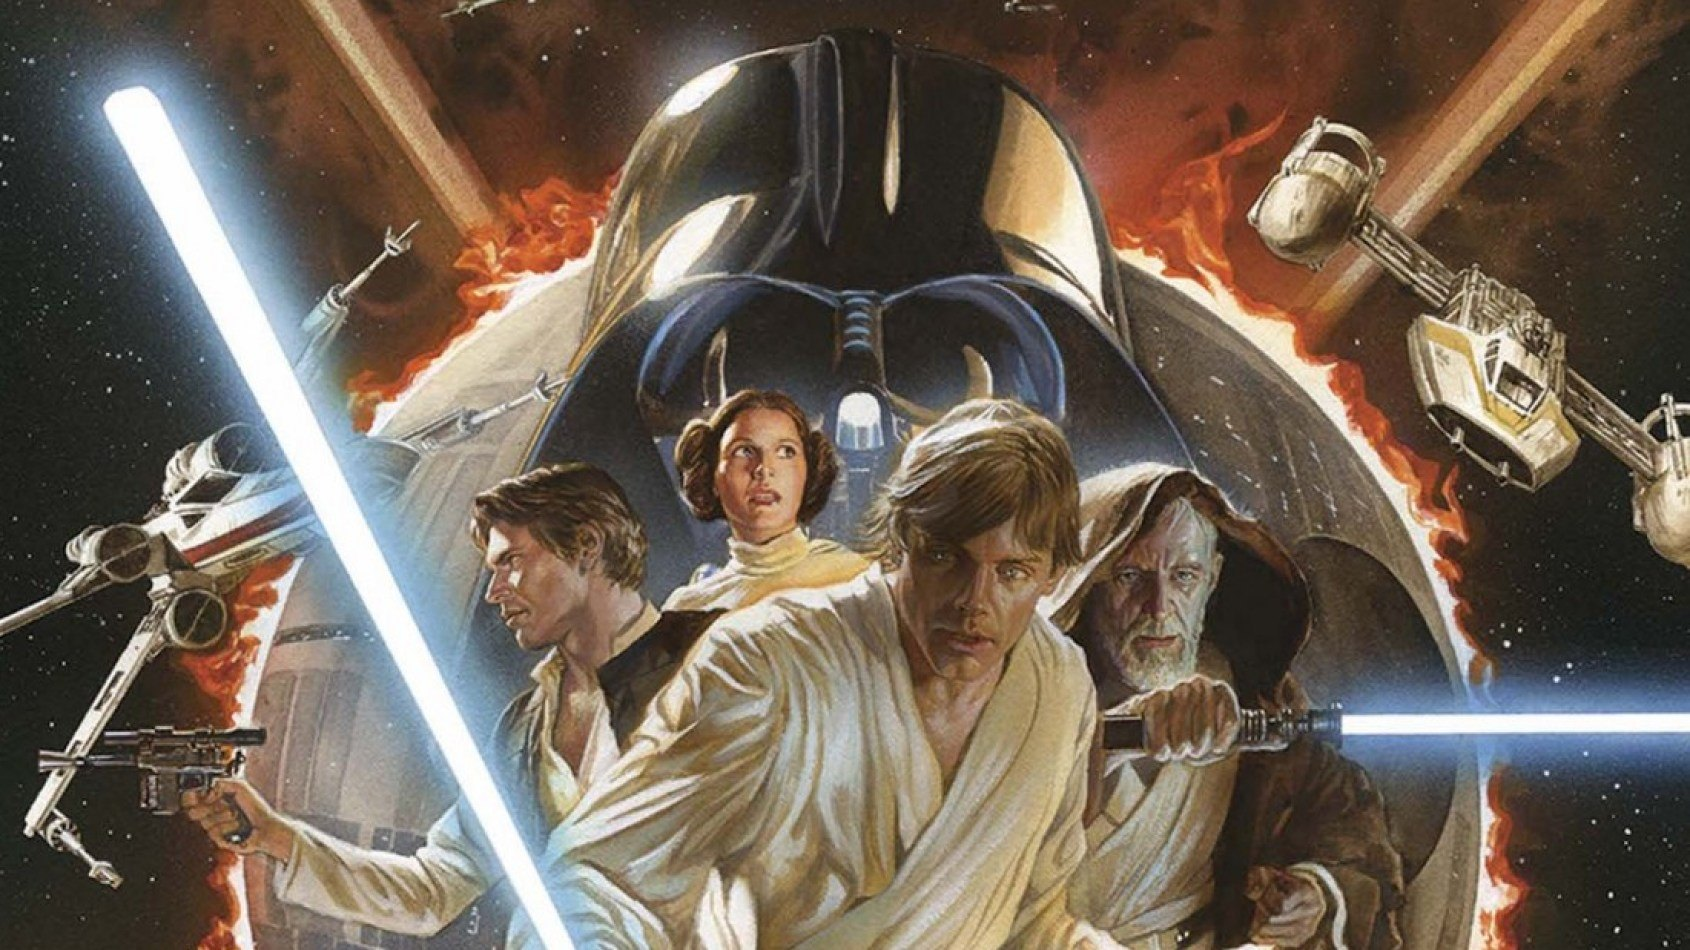 [Panini] 4 couvertures pour le magazine STAR WARS 004, dont 2 collectors